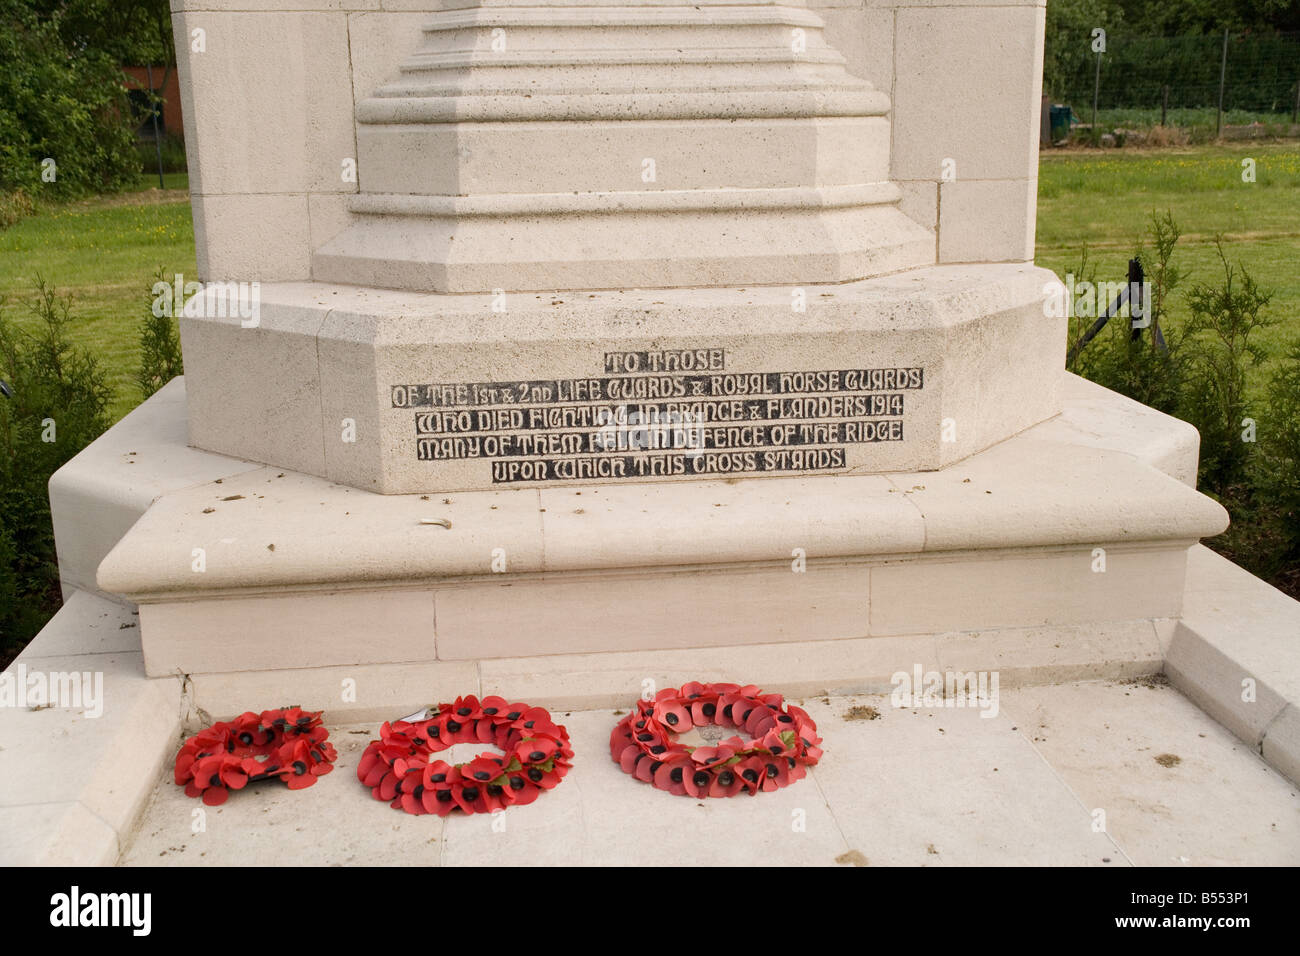 The Household Cavalry Monument at Zandvoorde near Ypres, memorial to the battles of October 1914 in the First World - Stock Image